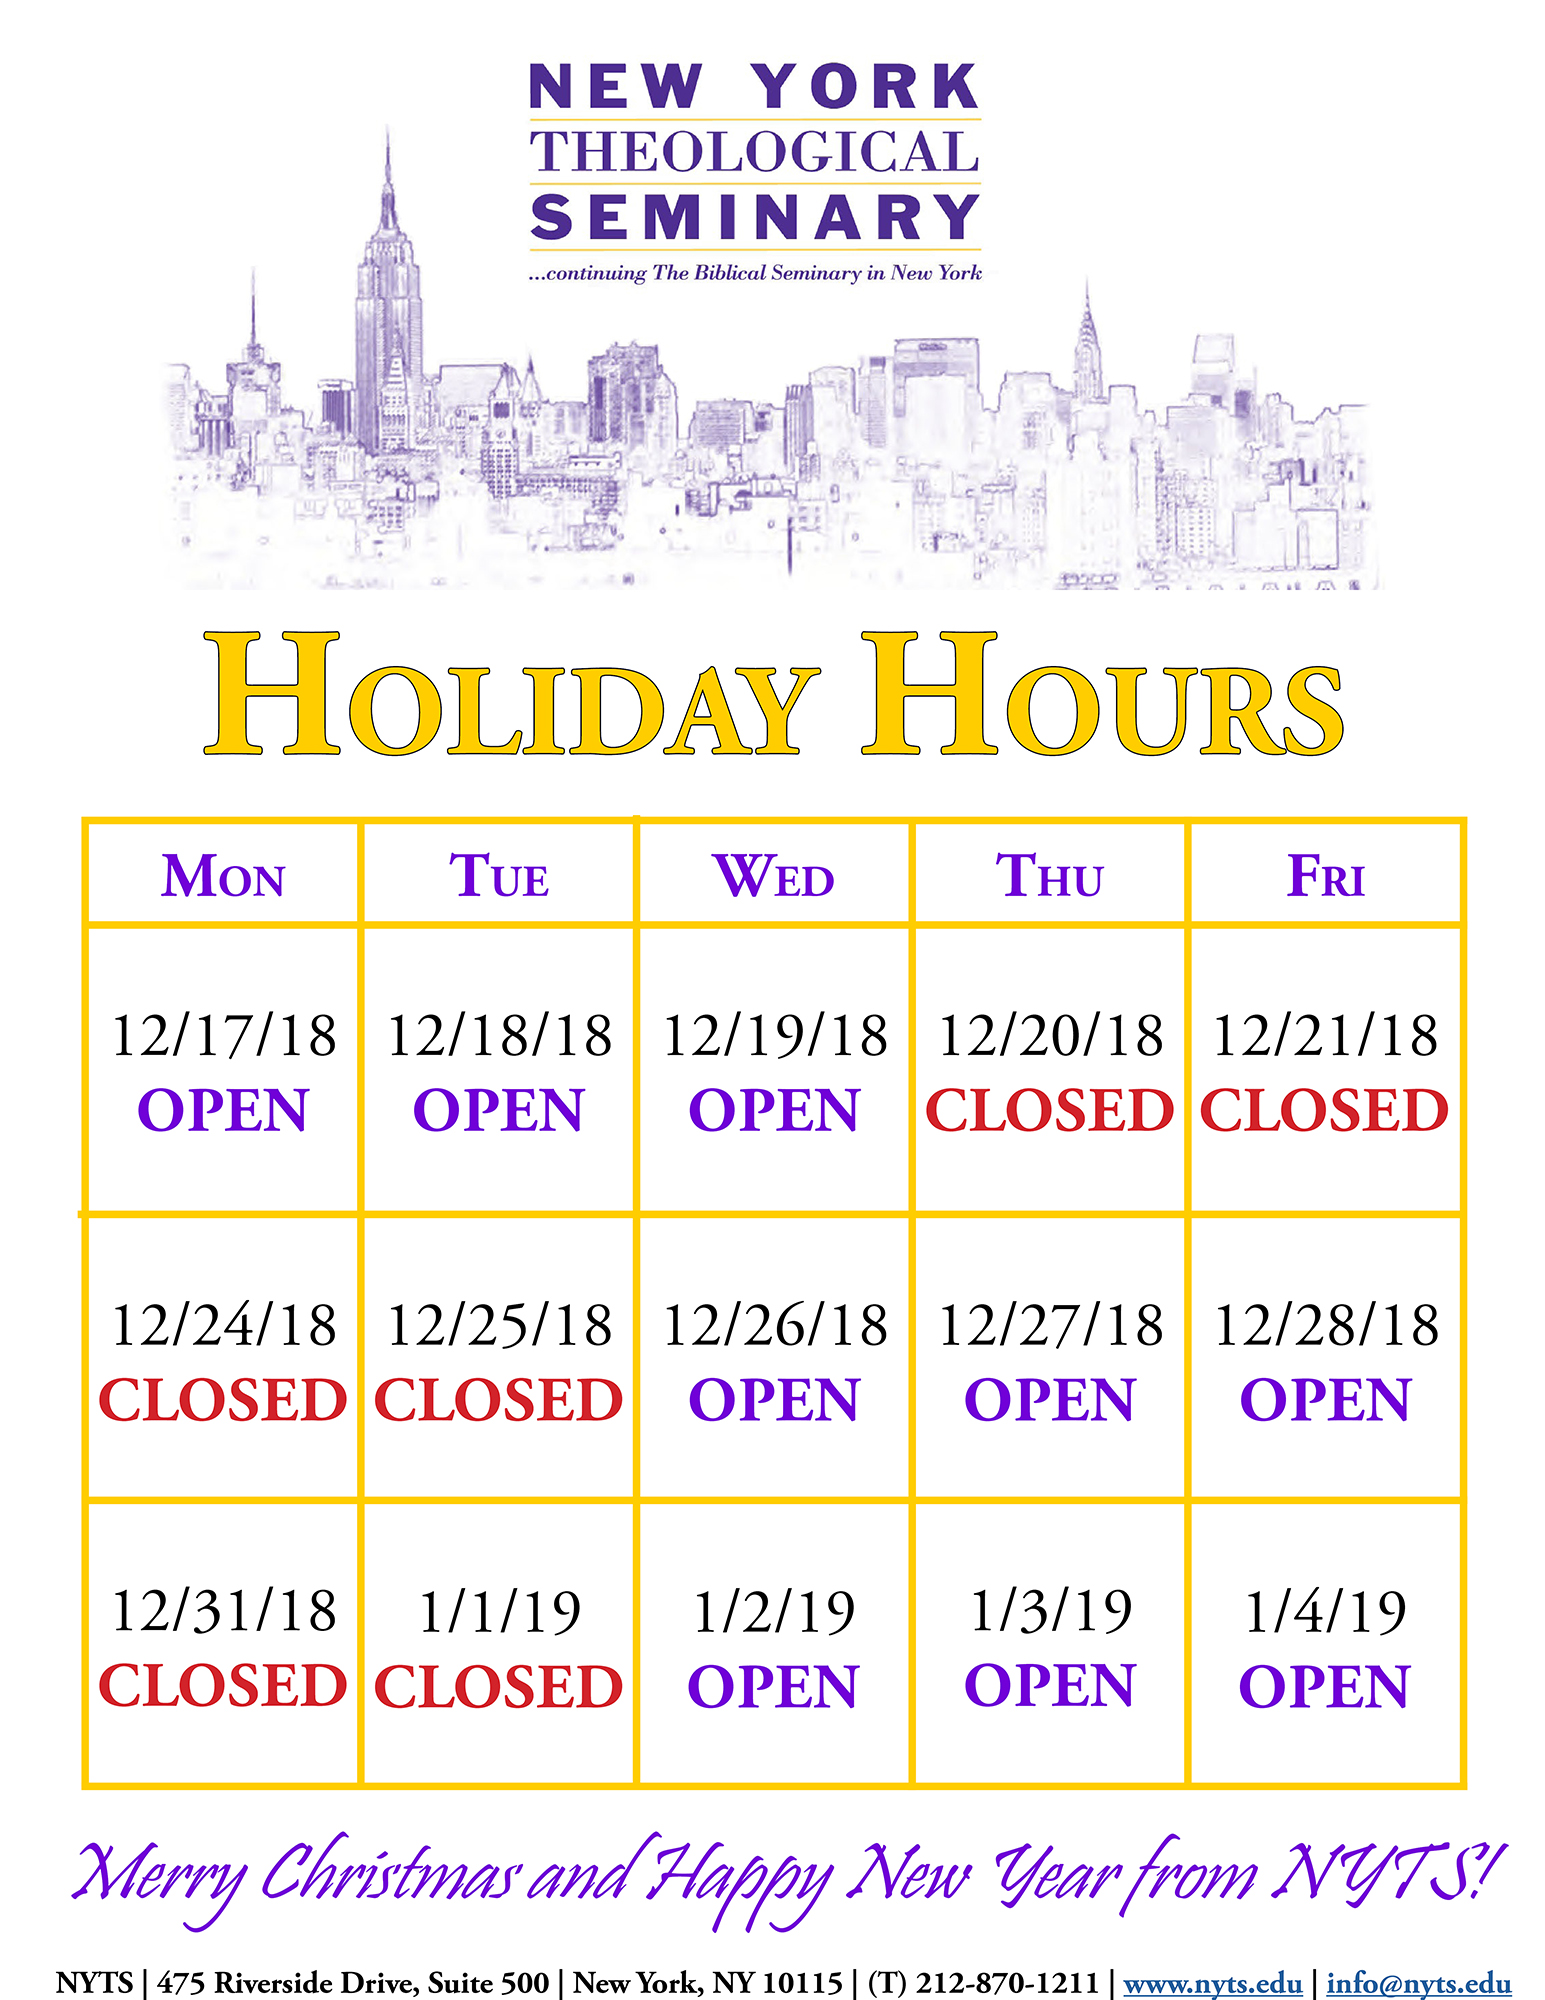 NYTS 2018 Holiday Hours